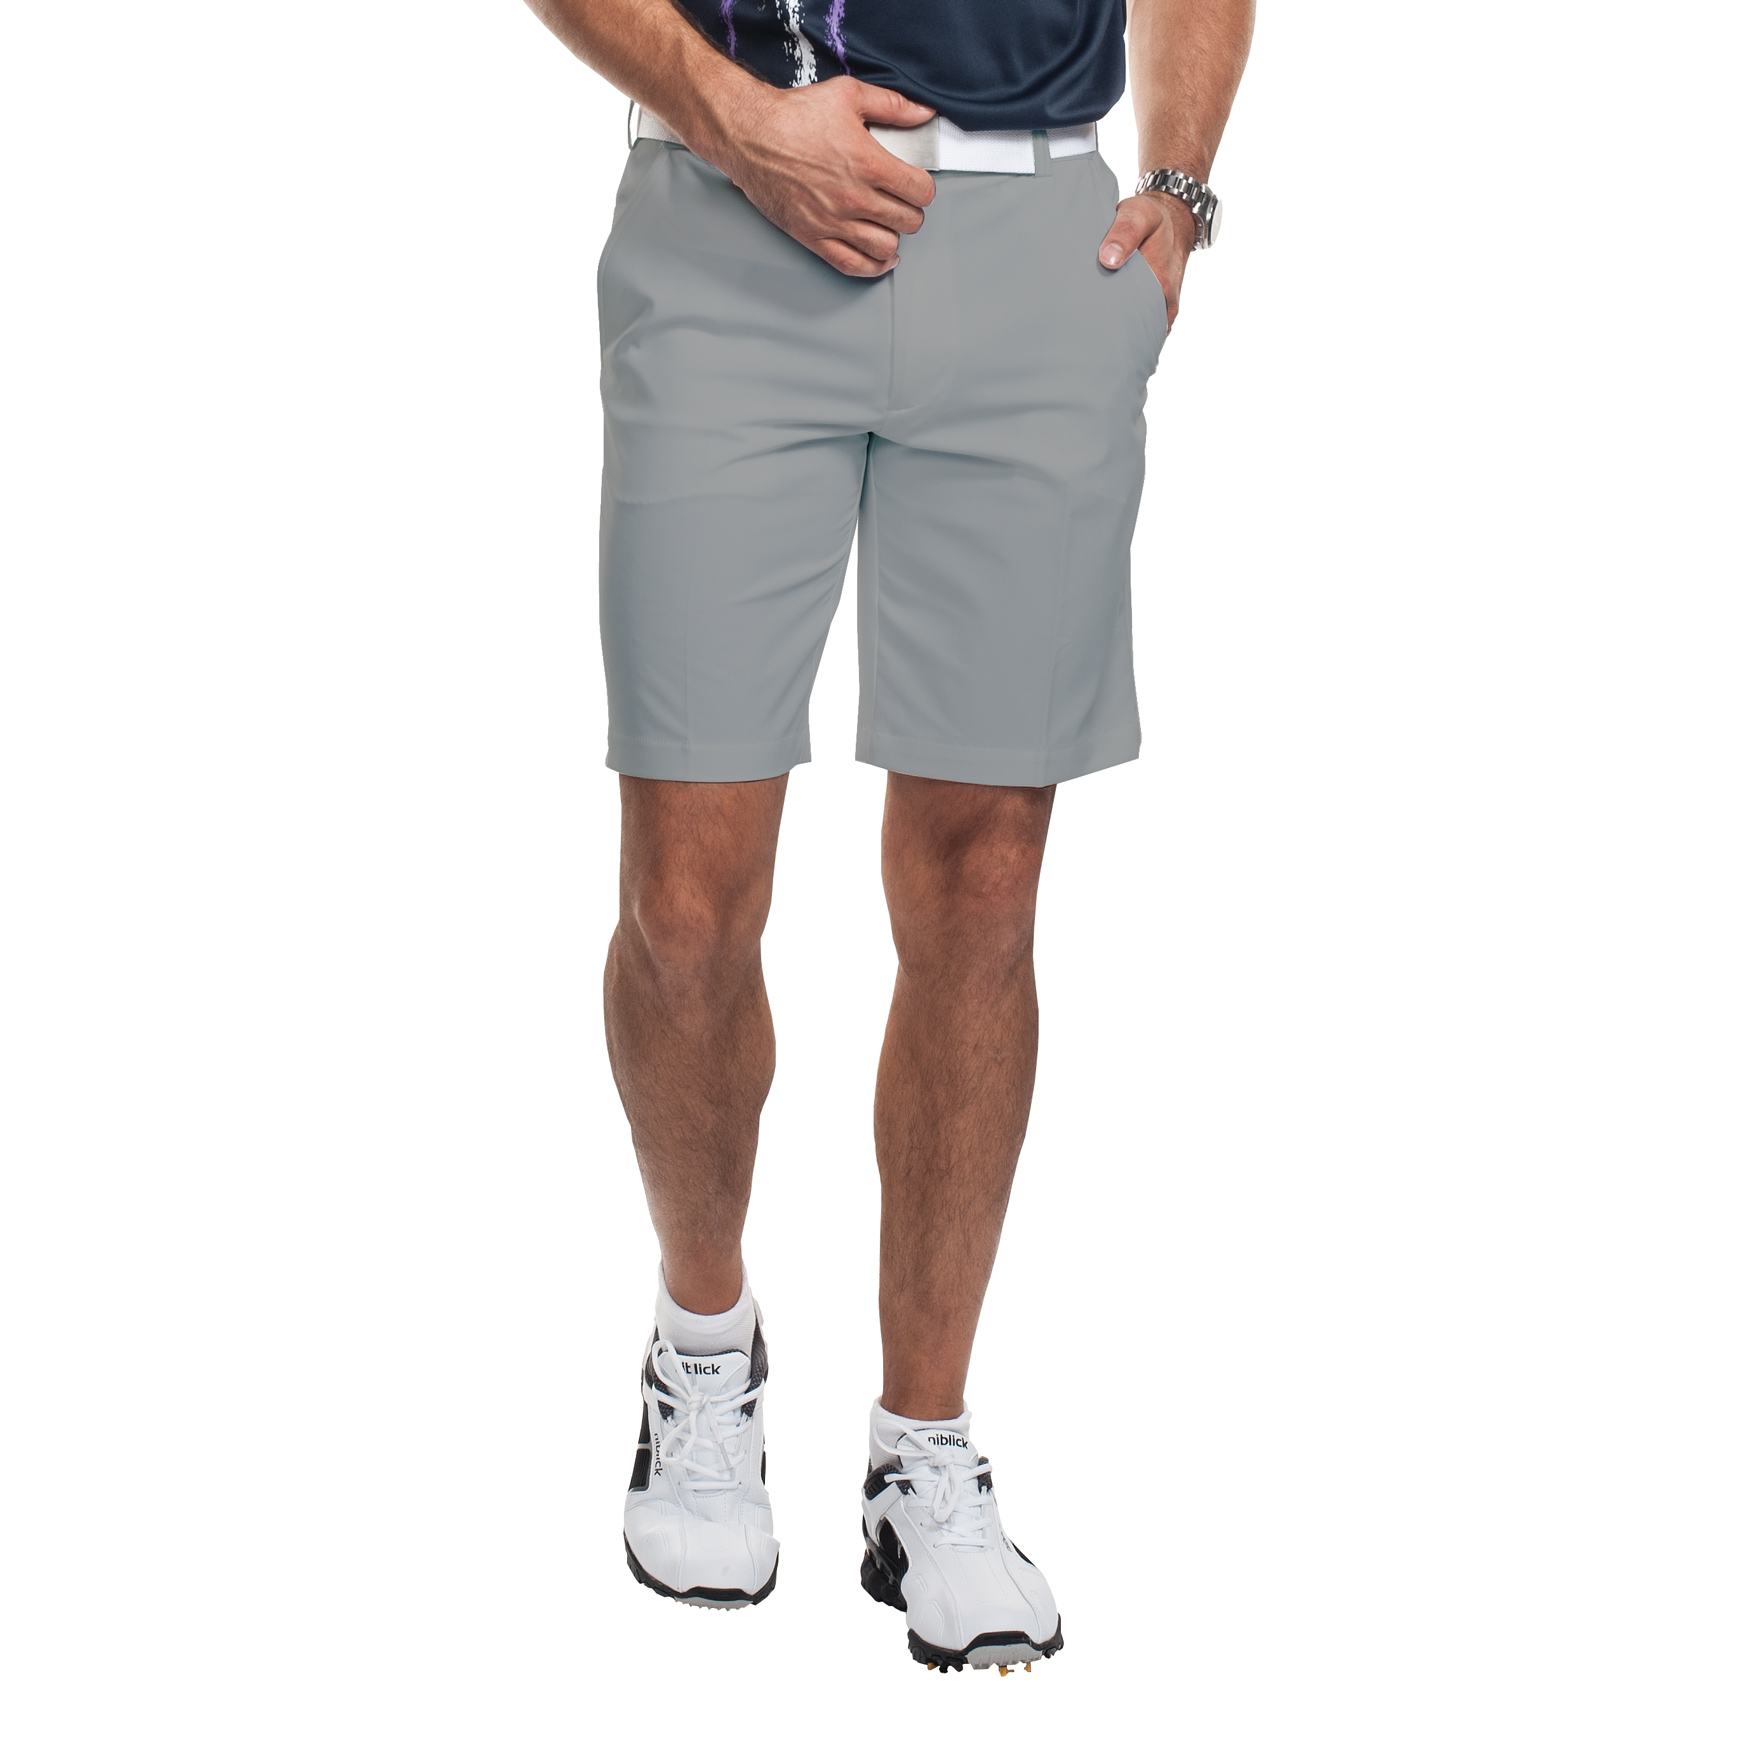 SPORTE LEISURE Men's Plain Wicking Short